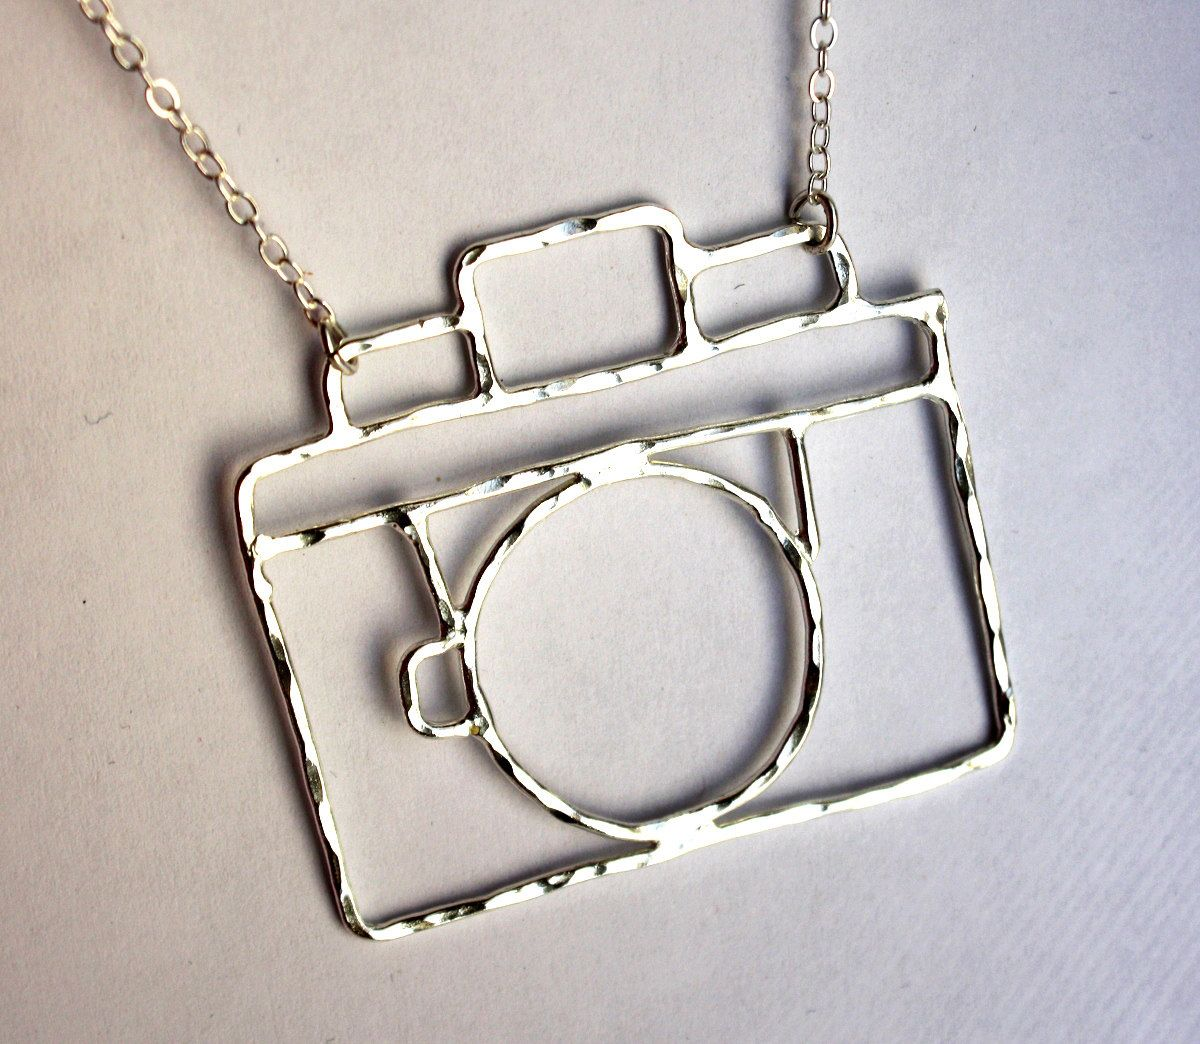 jewelry product productphotograpghysuperstar com quality photos photograpghy necklaces high necklace photography